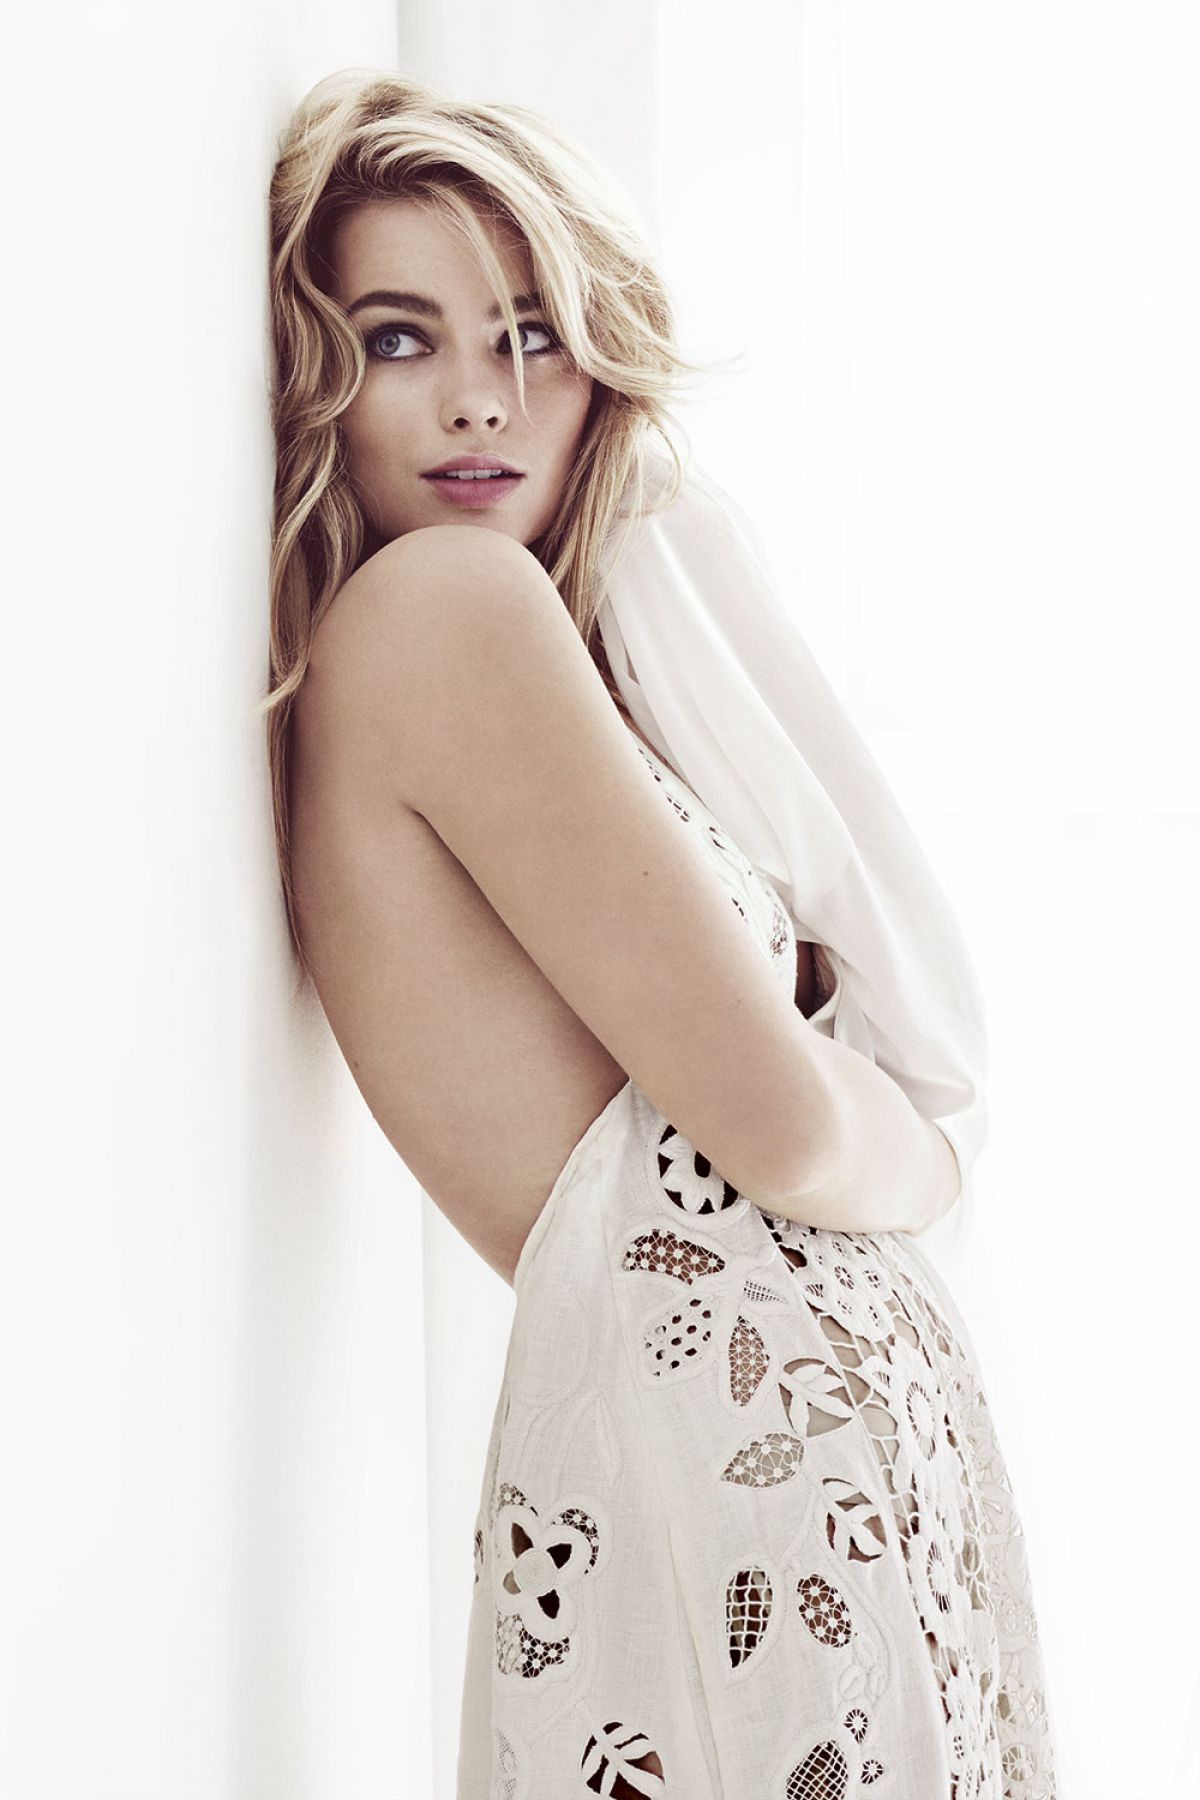 Margot Robbie At Harper39;s Bazaar UK April 2015  Celebzz